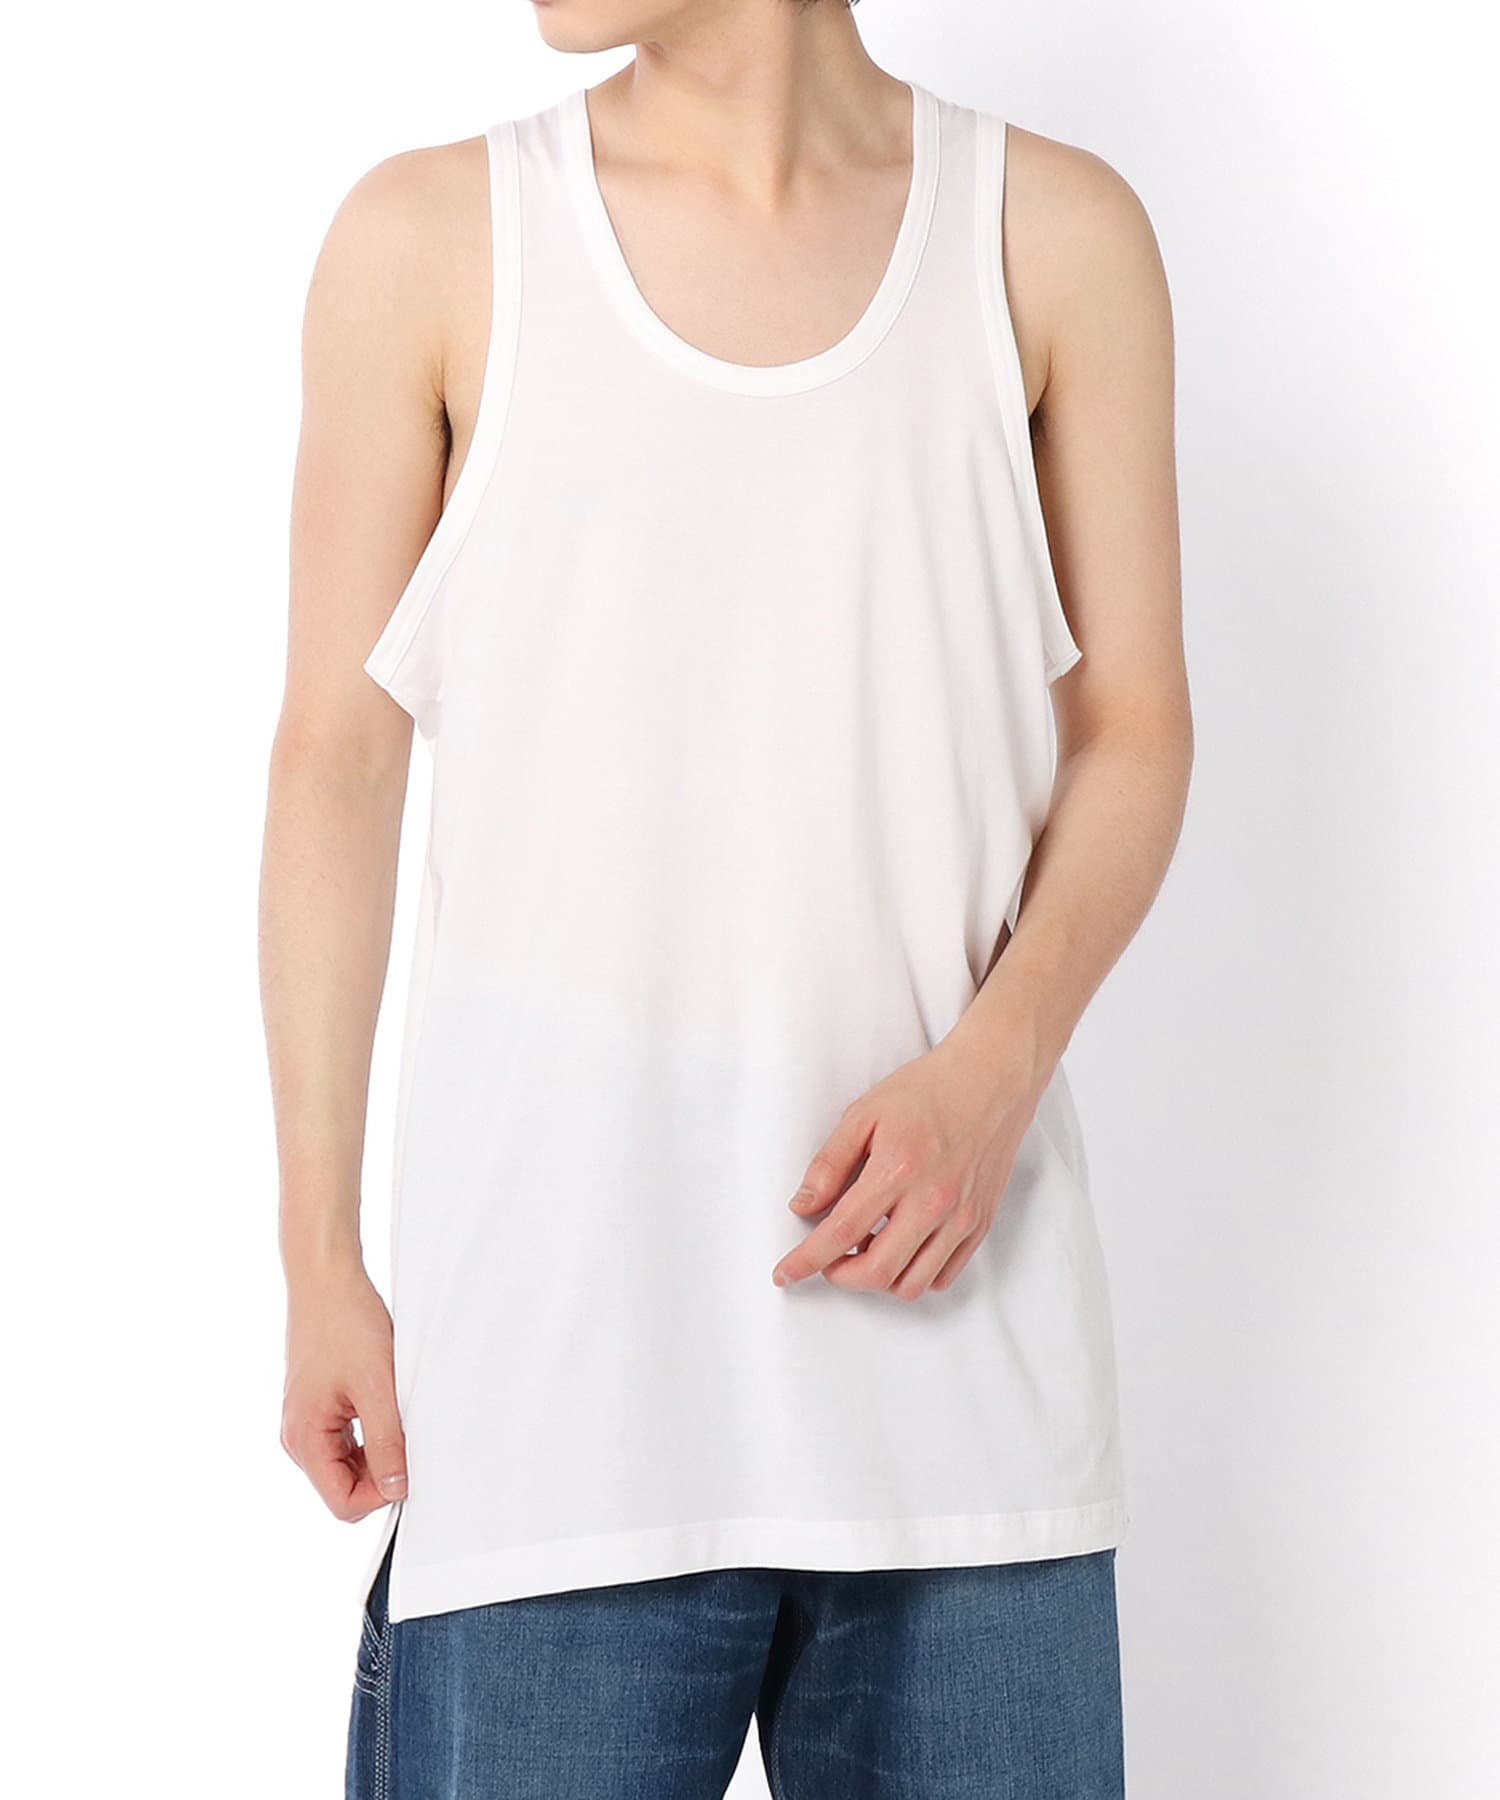 Lui's(ルイス) 【Y-3】 M CLASSIC PAPER JERSEY TANK TOP